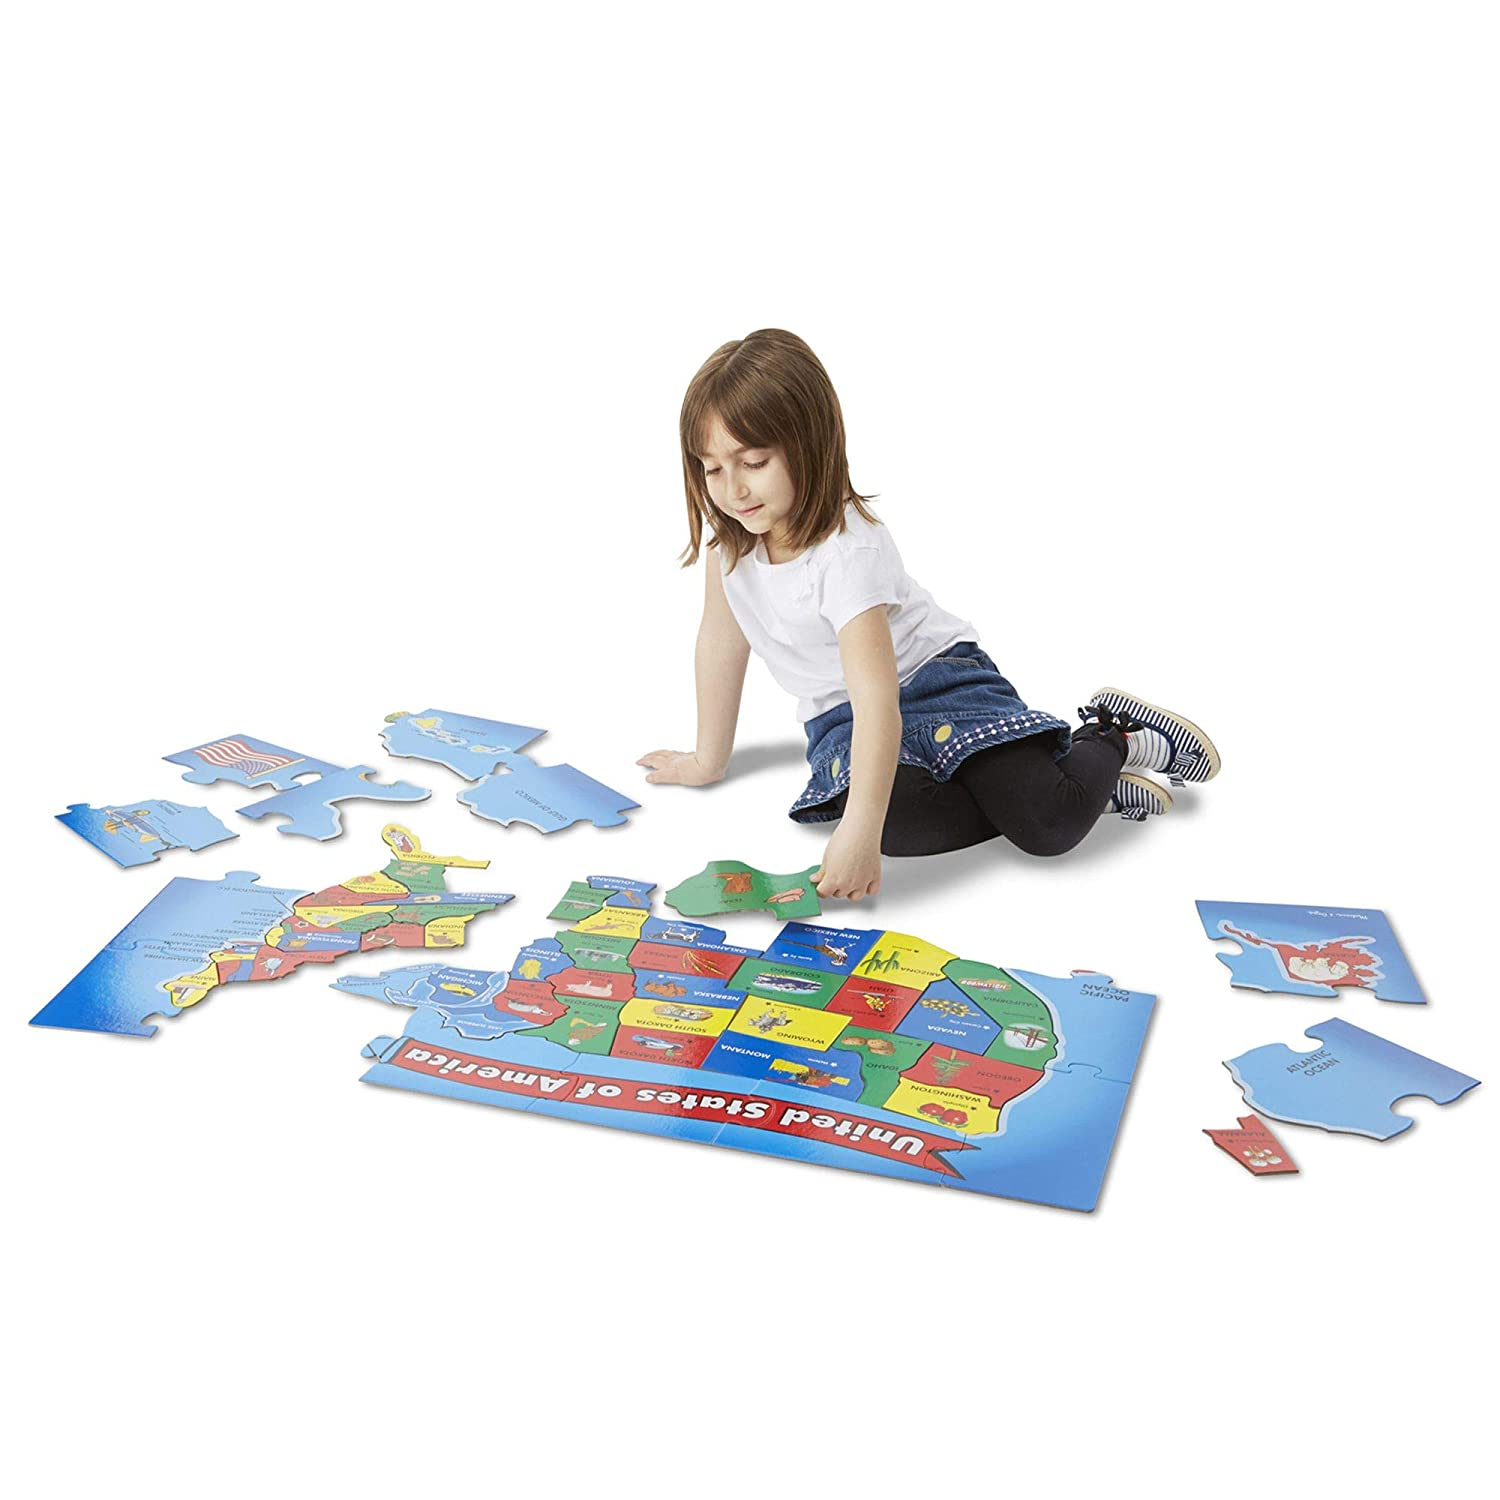 Teaches Geography & Shapes, 51 Pieces, Measures 24-in Long x 36-in Wide